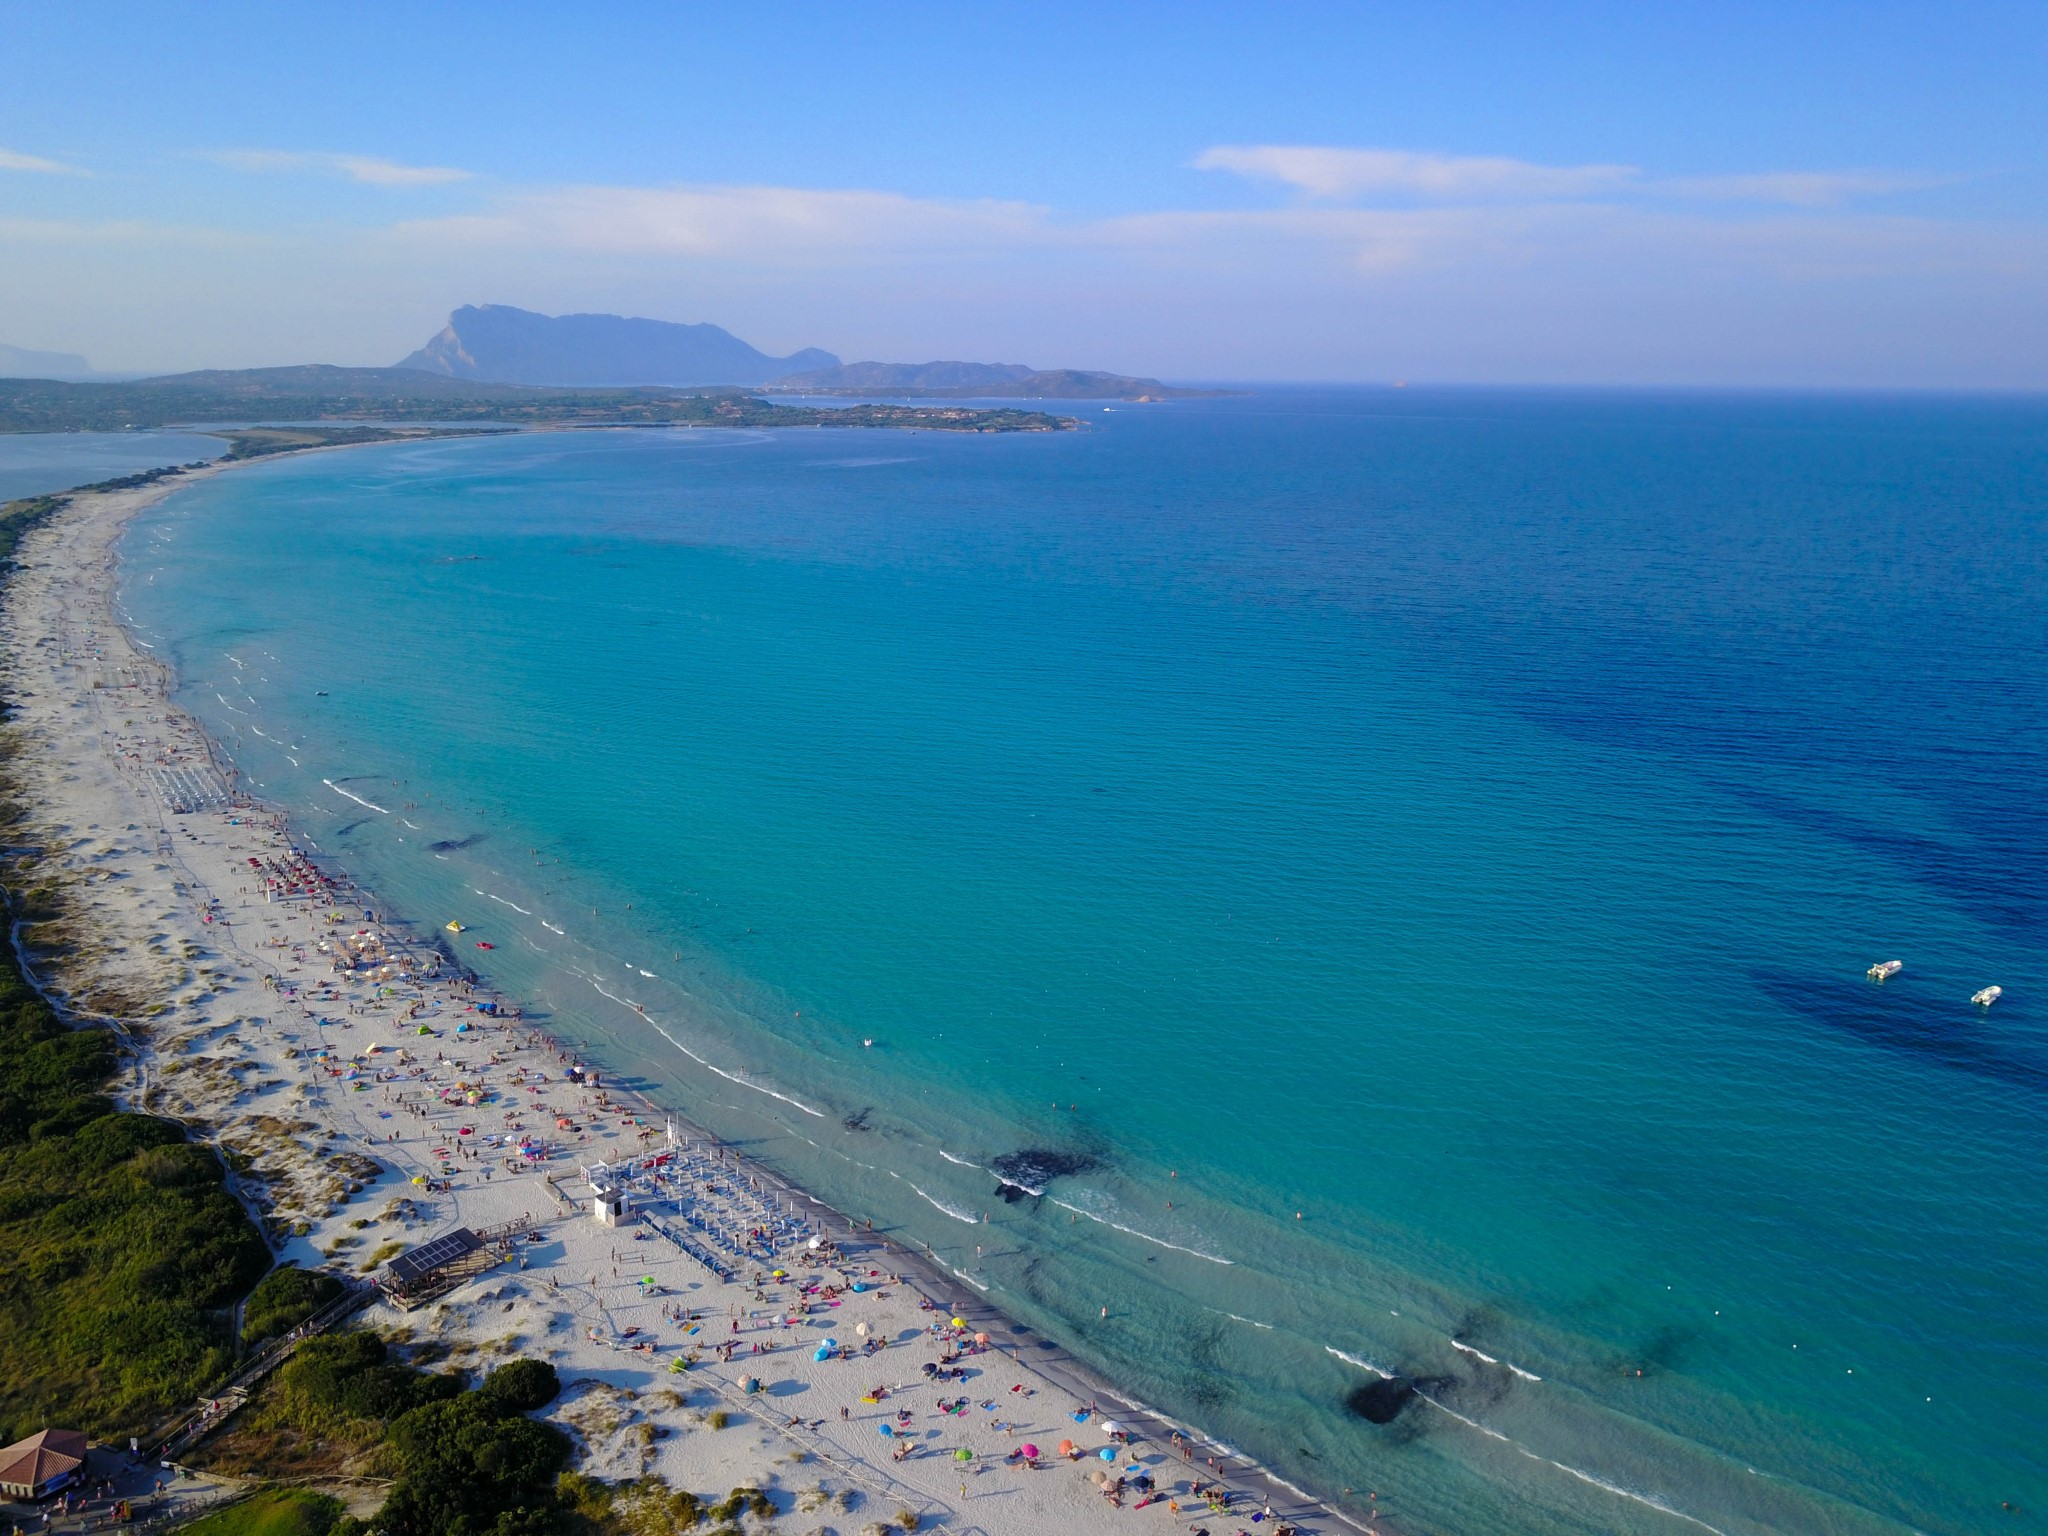 Aerial view. White sand and clear water of the Mediterranean Sea. The famous La Cinta beach. The island of Sardinia. Italy.